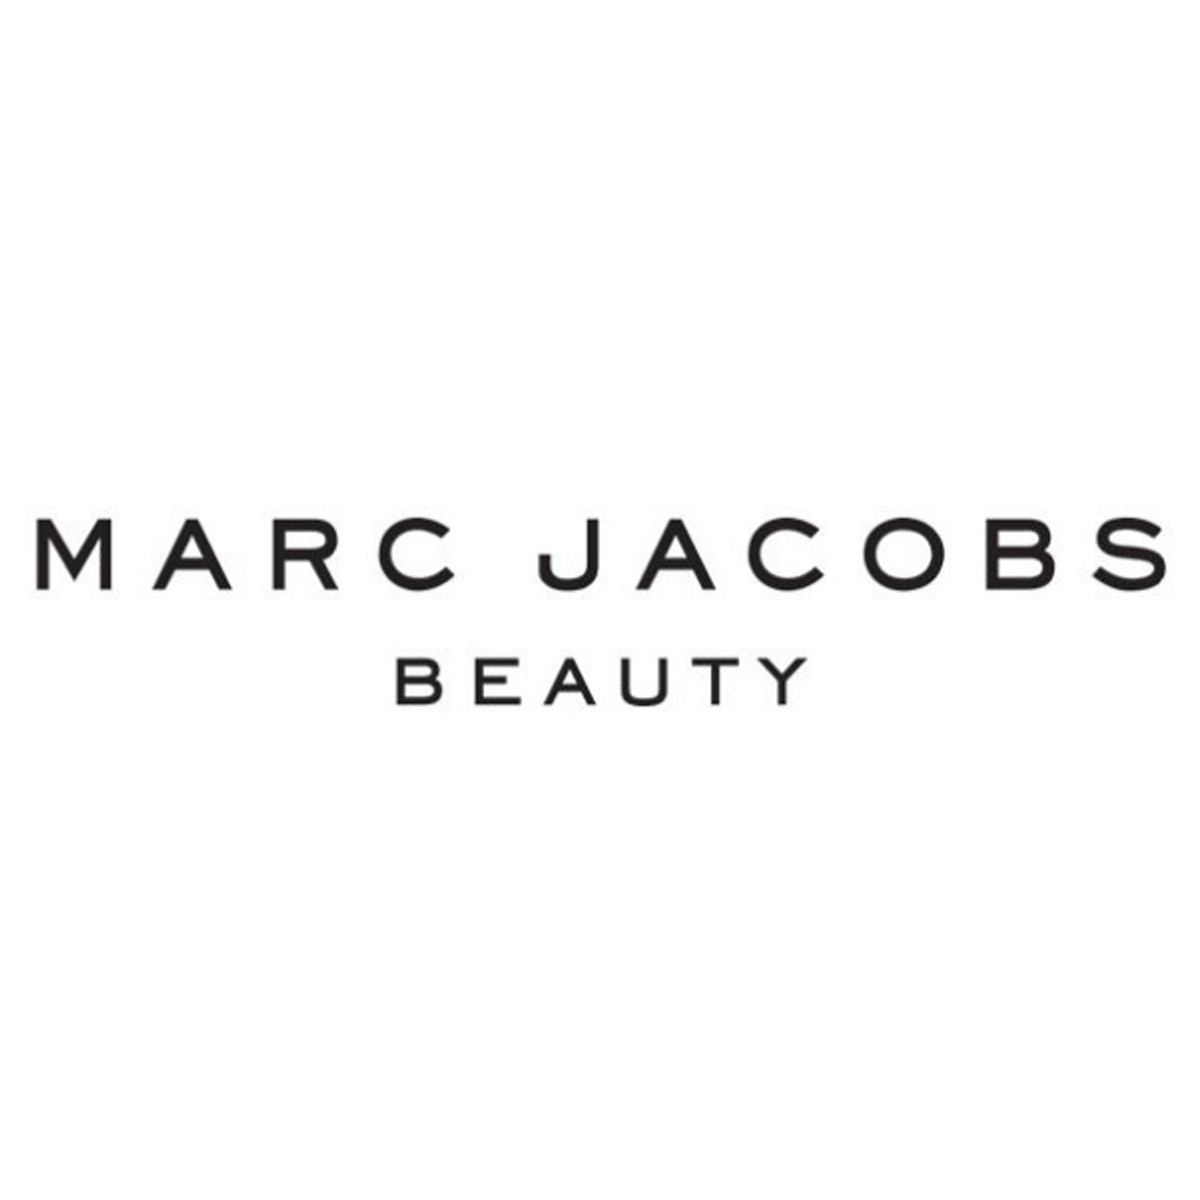 marc jacobs beauty.jpg